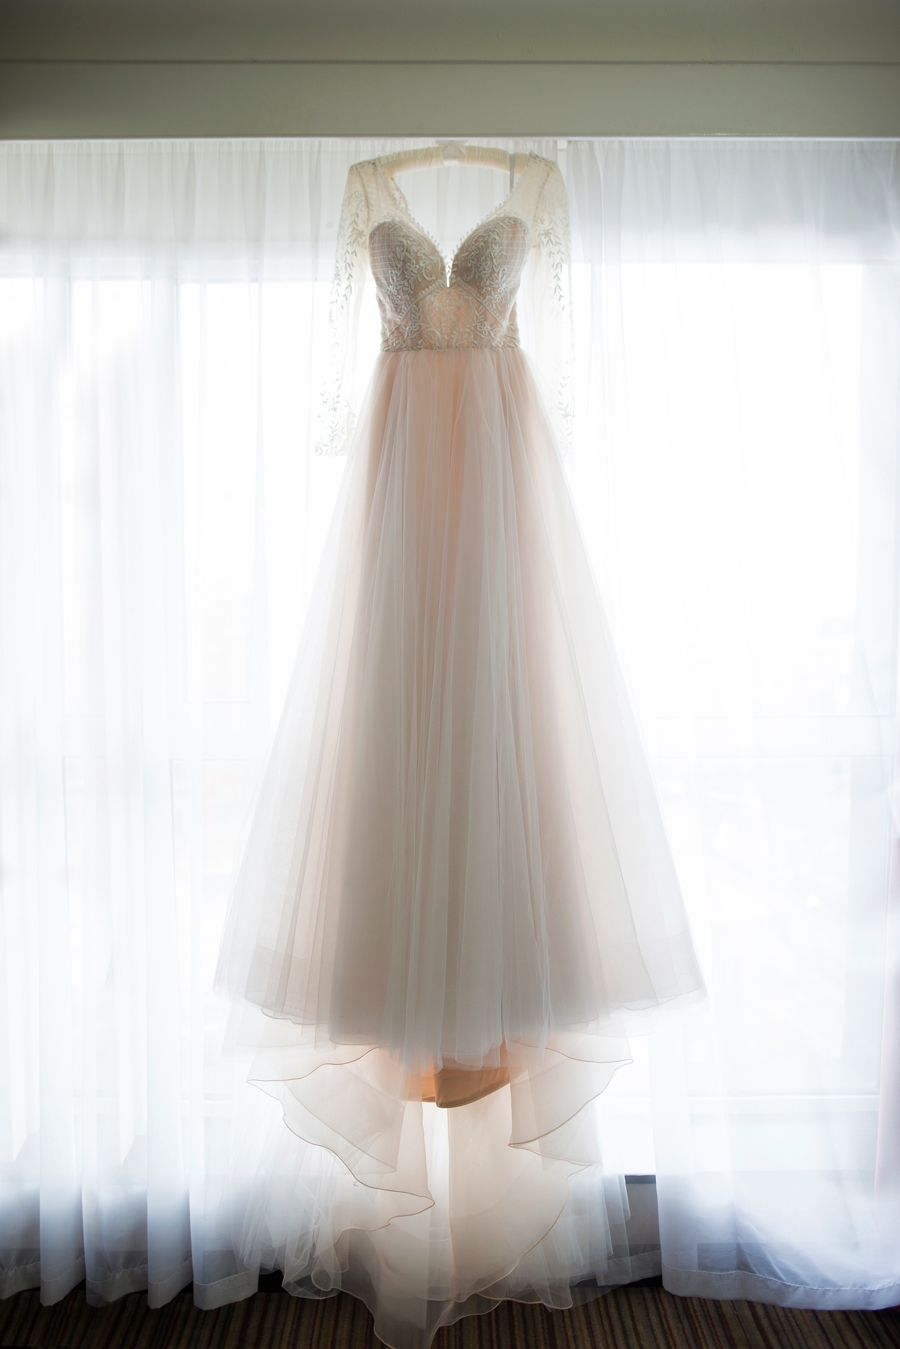 Photo Of Wedding Dress From The Morning Bridal Prep